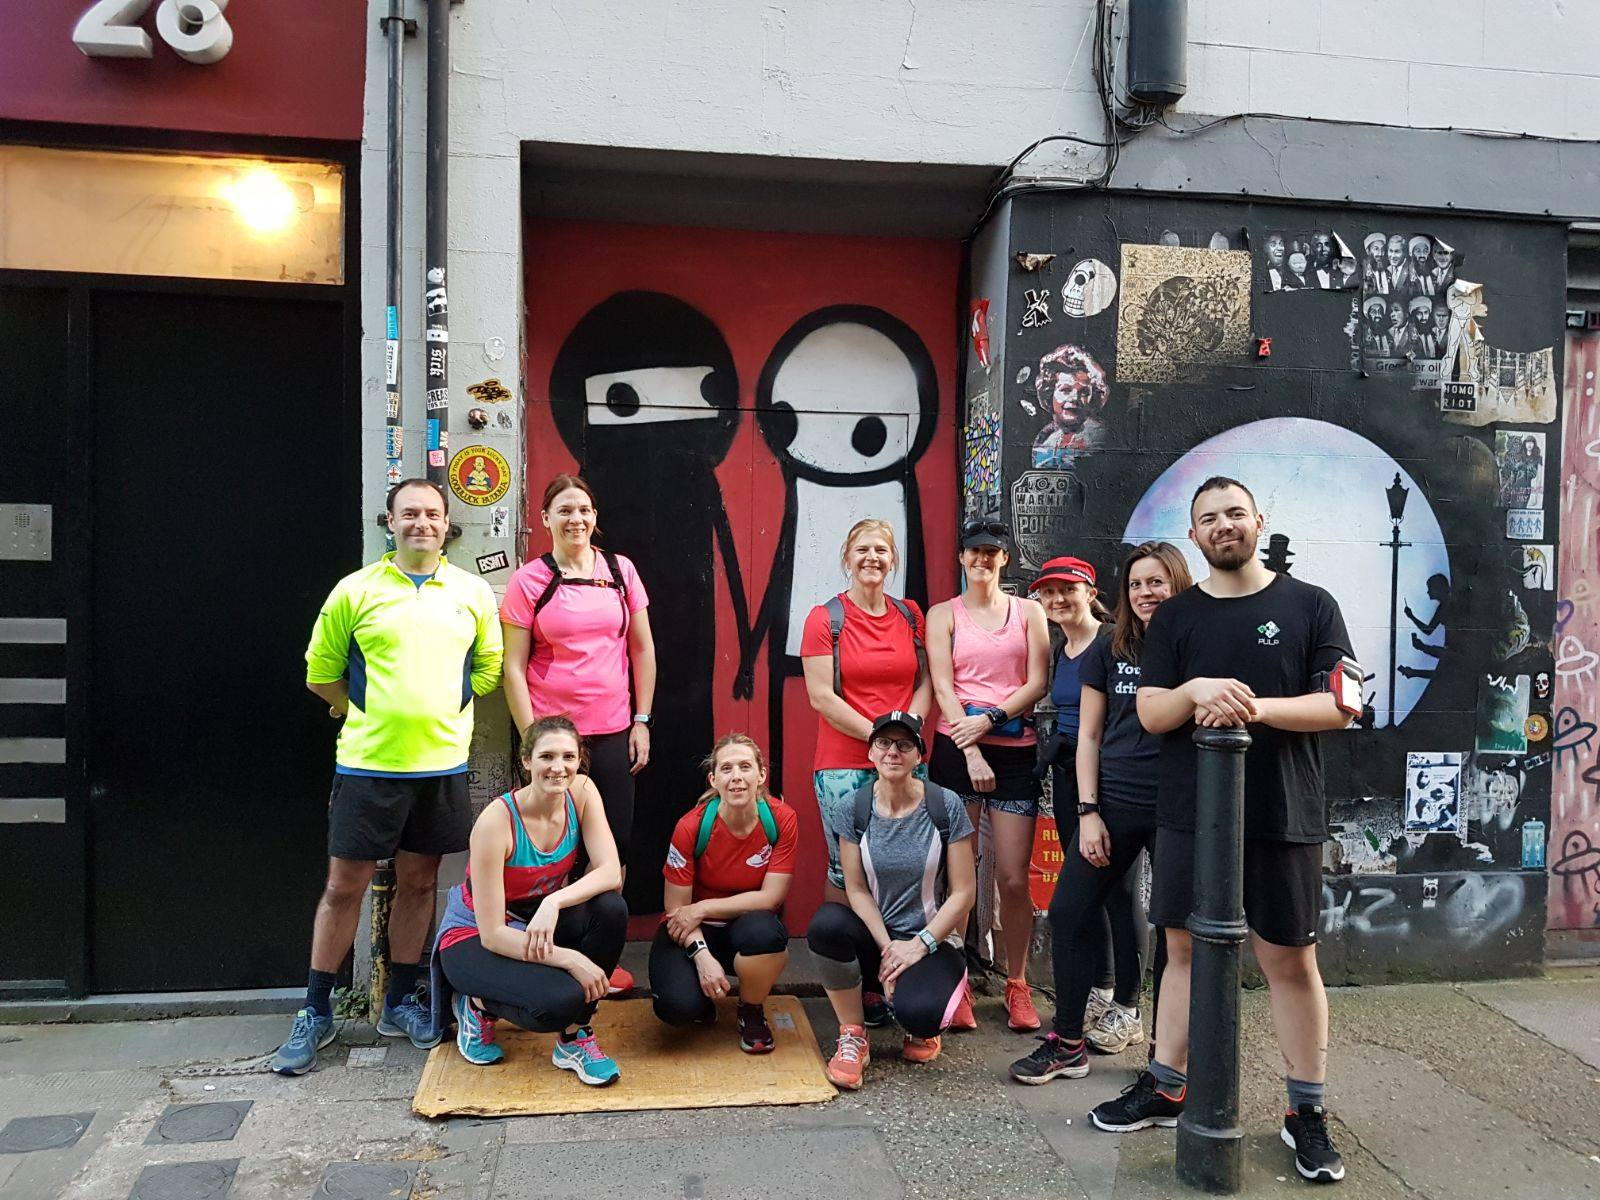 5k Street Art Running Tour of London